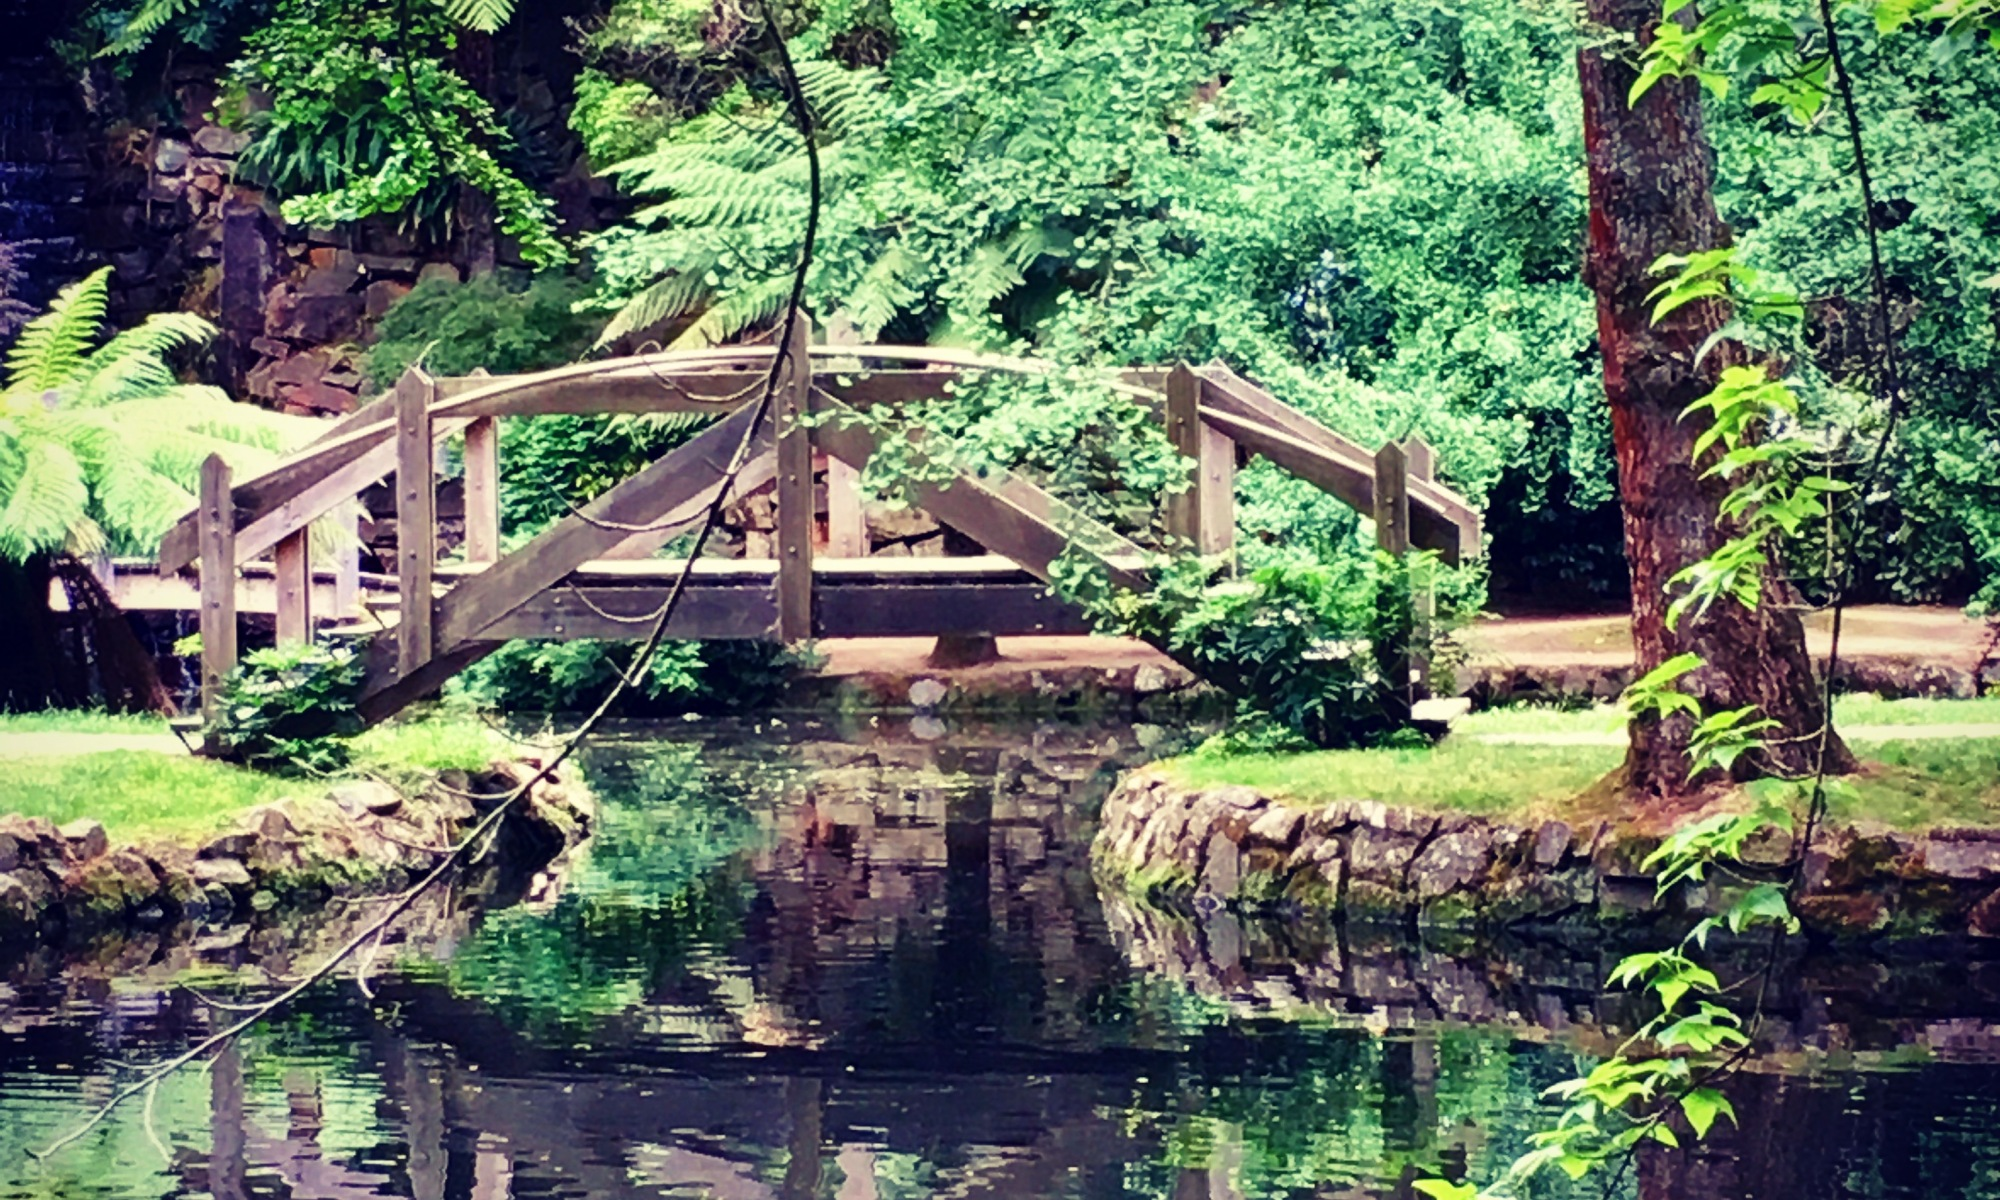 Bridge in the garden